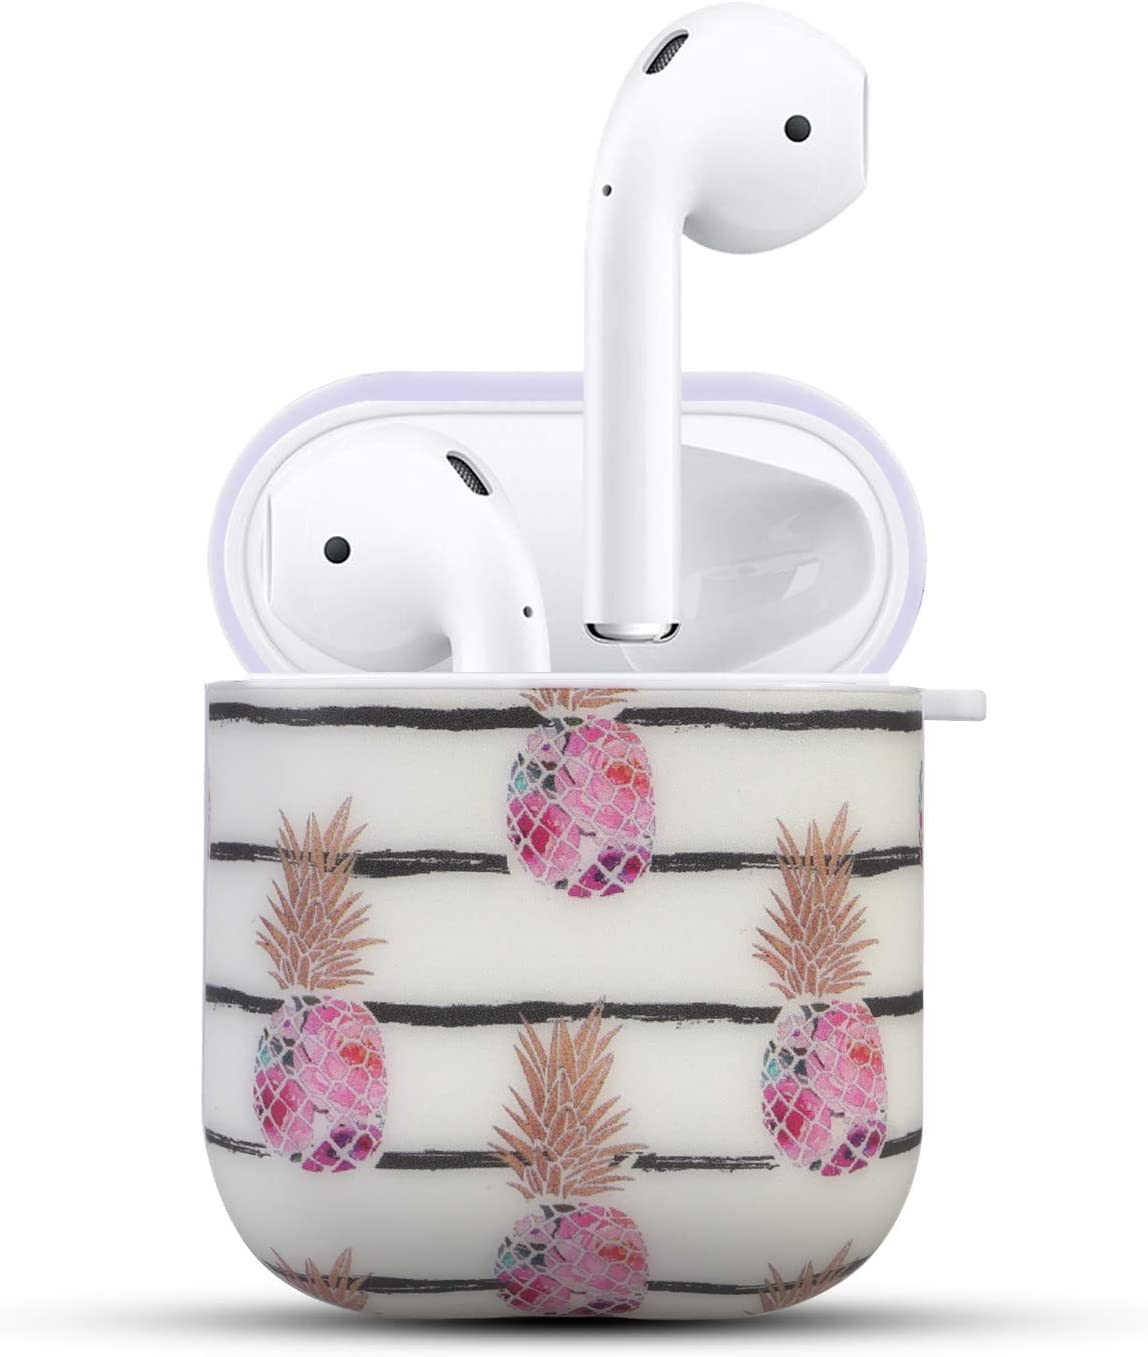 Airpods Skin HIDAHE Airpod Cases Apple Airpod Case Golden Pineapple Cute Luxury Hard Designer Protective Airpods Case for Girls Kids Compatible with Apple AirPods Charging Case 2/&1